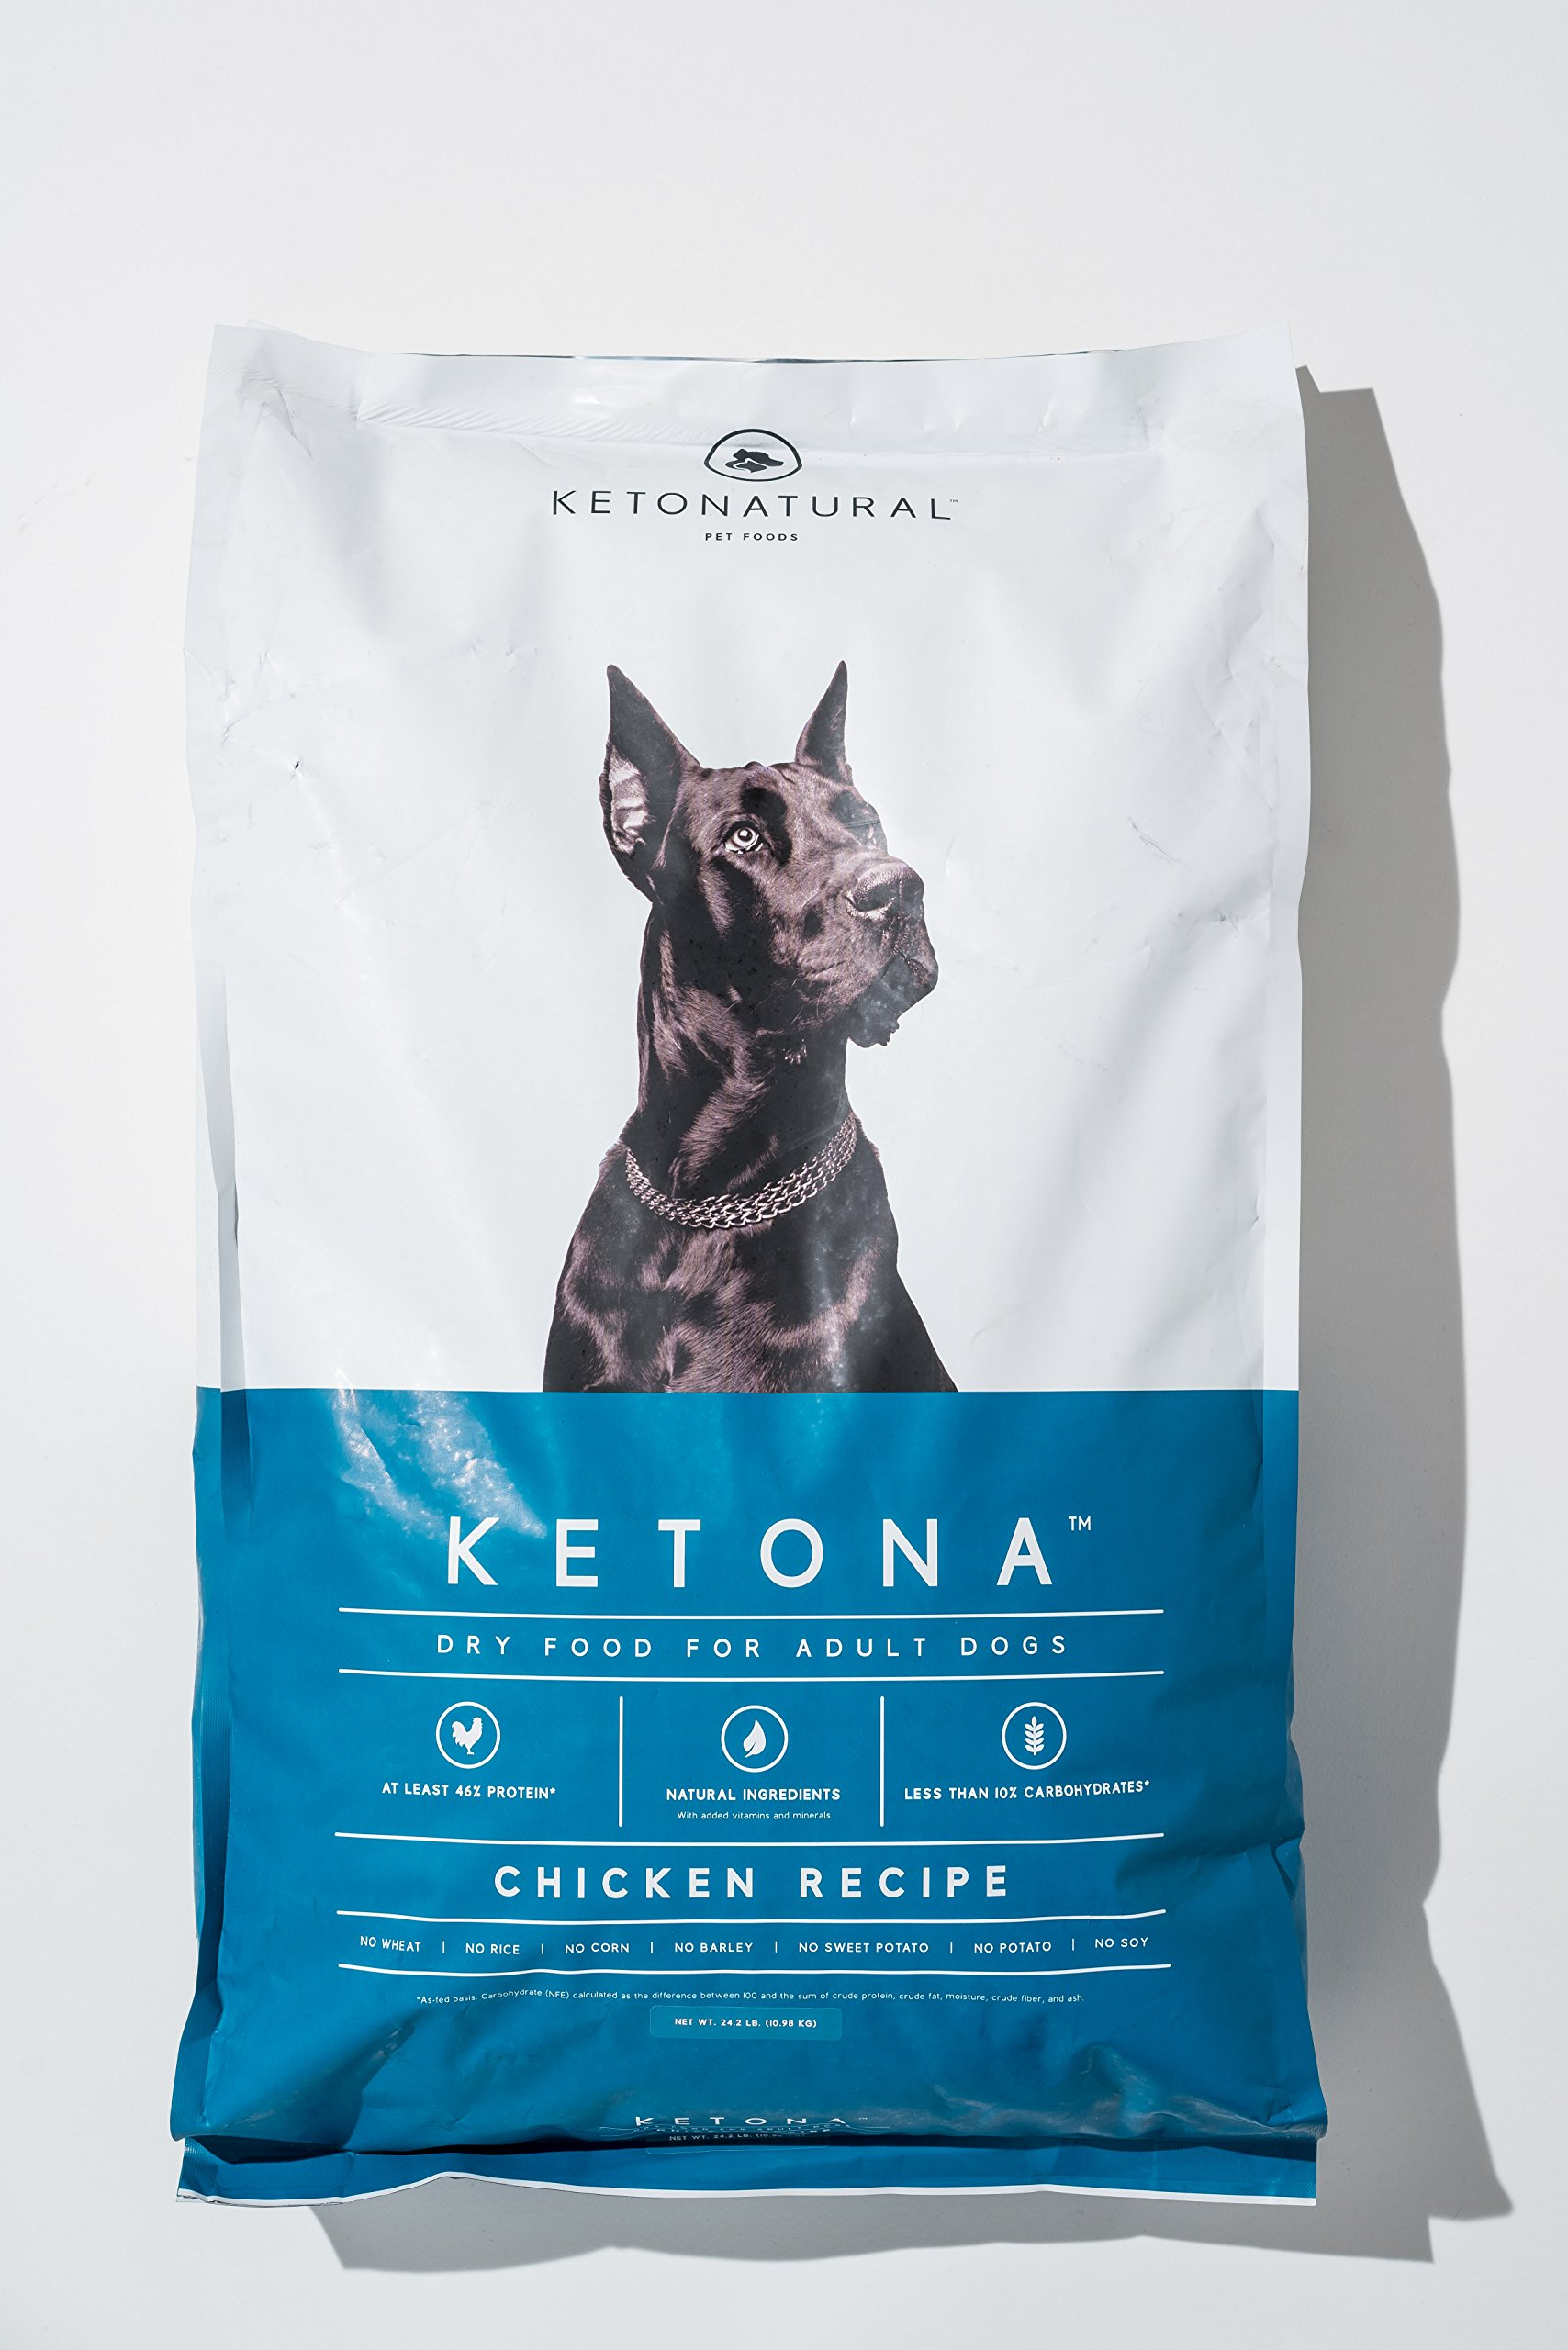 Ketona Chicken Recipe Dry Food For Adult Dogs -- Low Carb, High Protein, Grain-Free Dog Food (24.2 lb) by Ketona